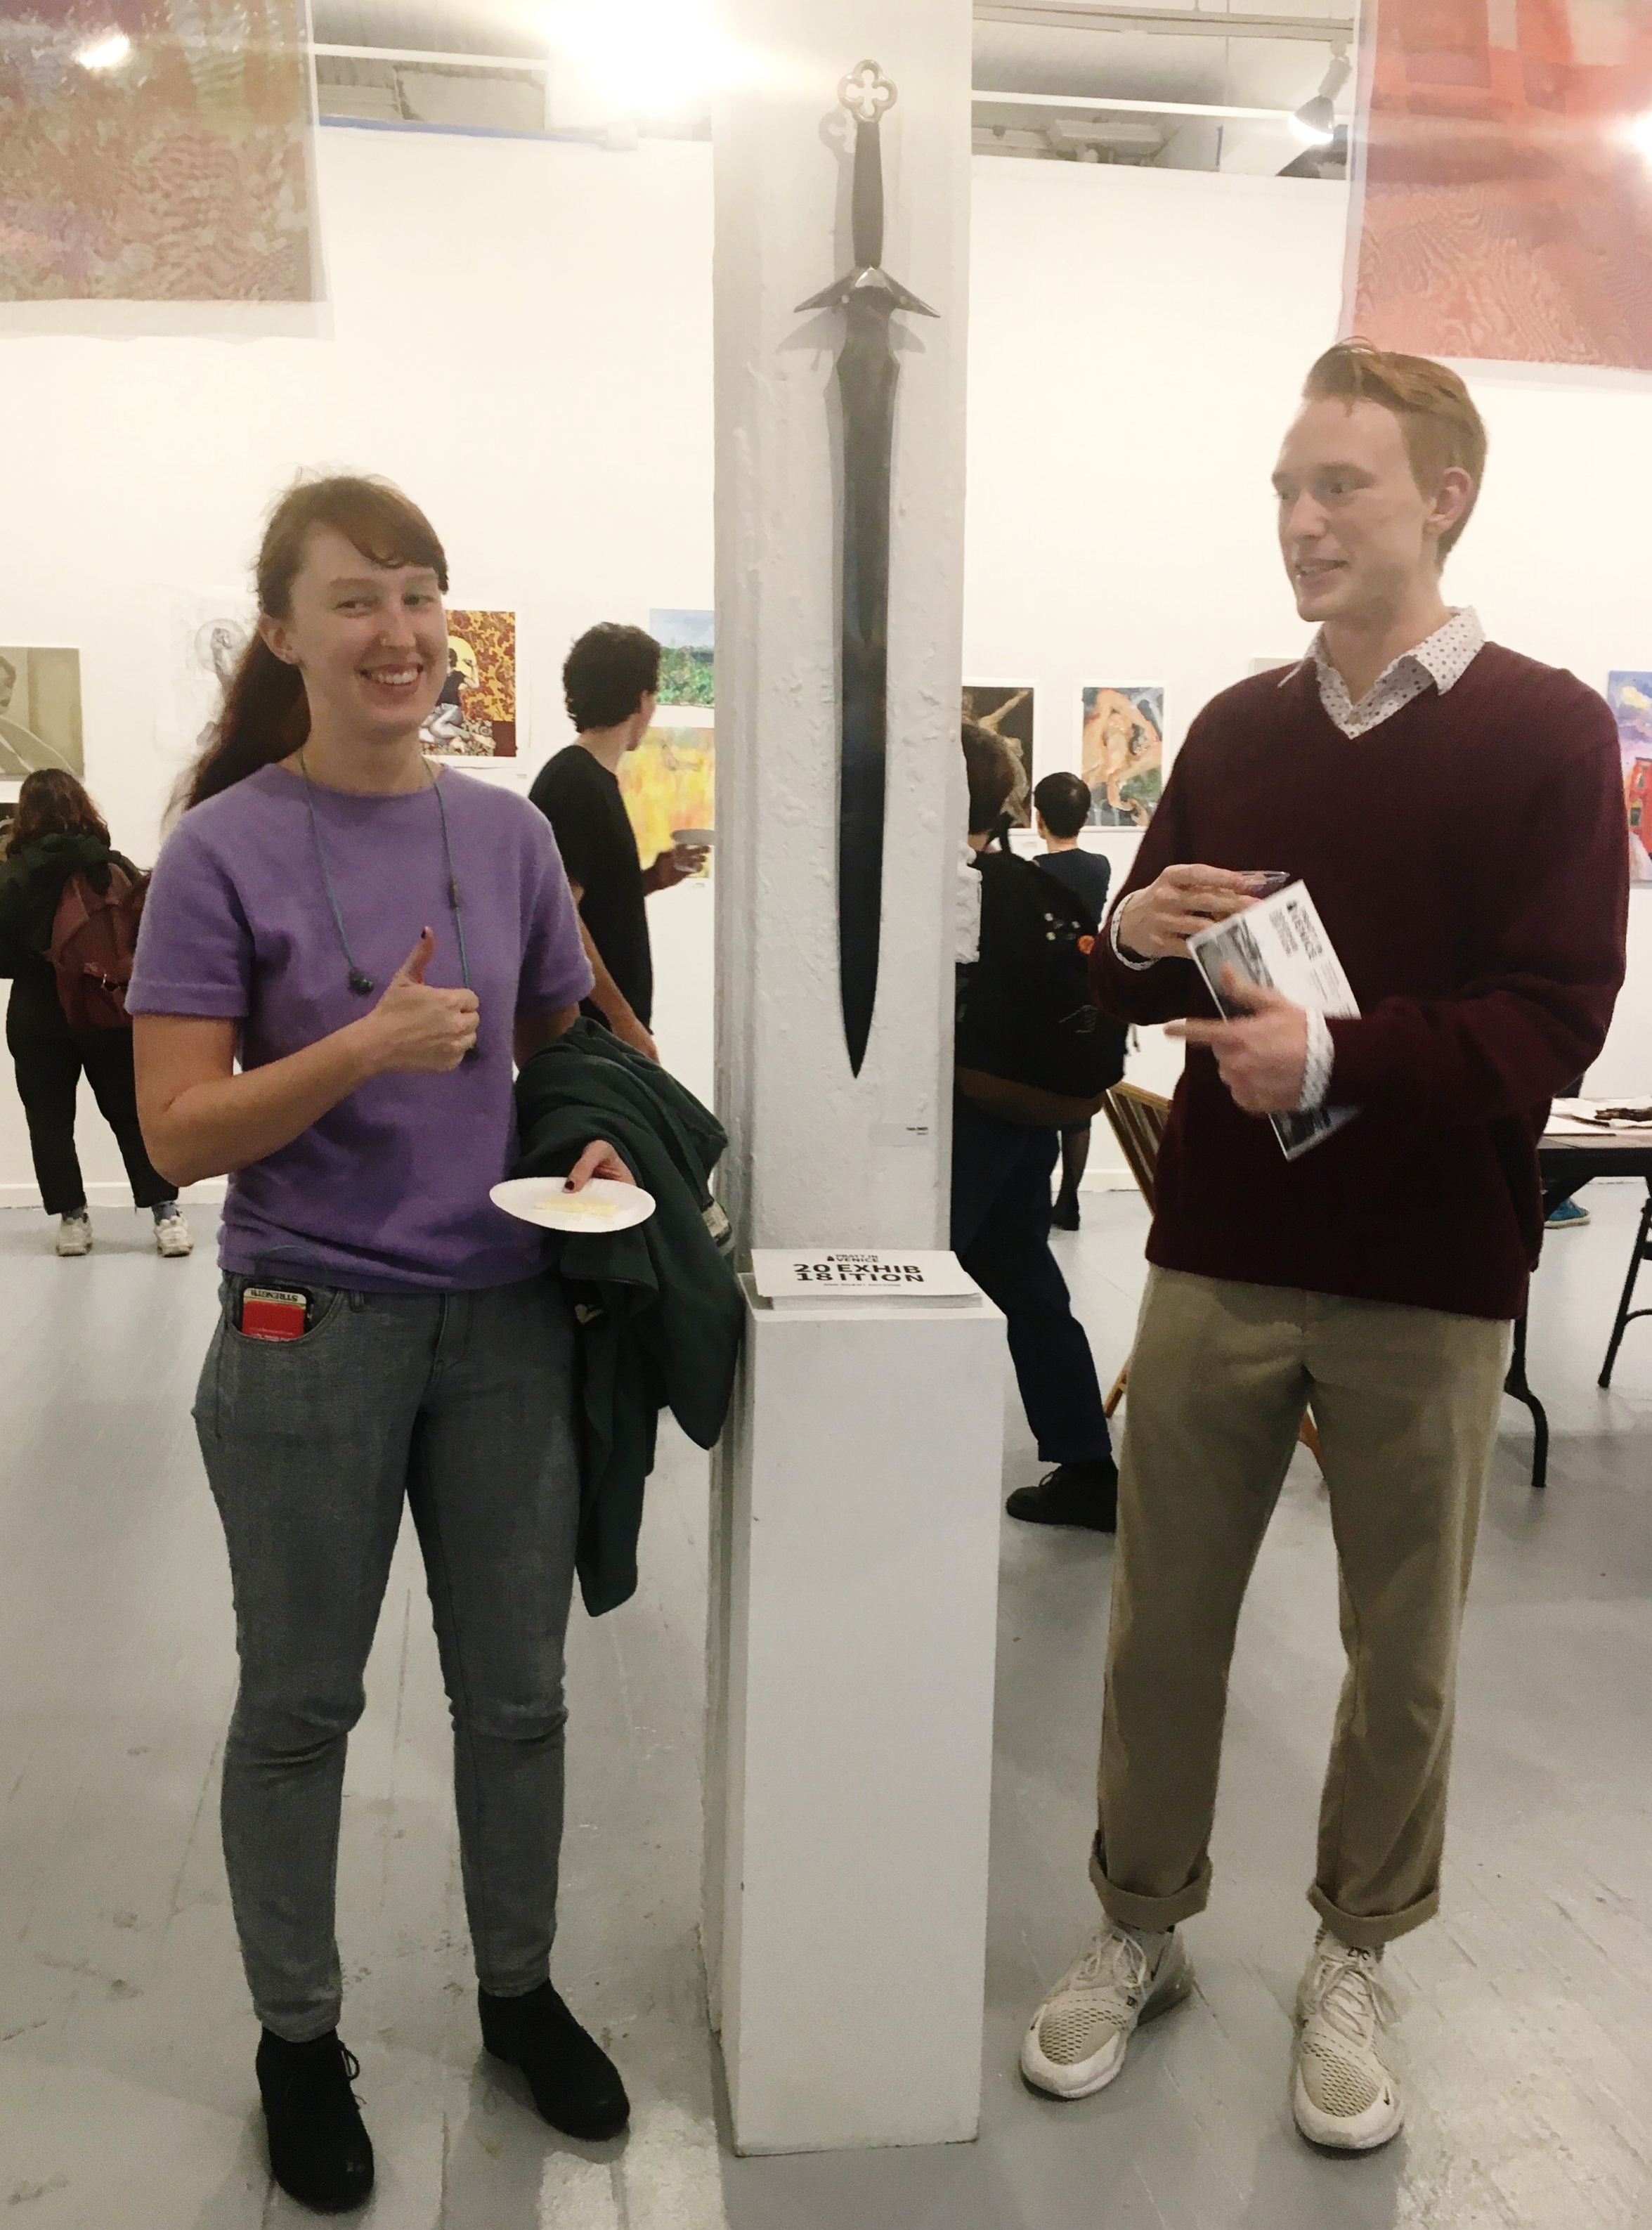 Thea Zweir (Undergraduate BFA Sculpture; PIV 2018) with her hand-forged sword and Christian Harding (BFA Digital Arts: 3D Animation; PIV 2018)